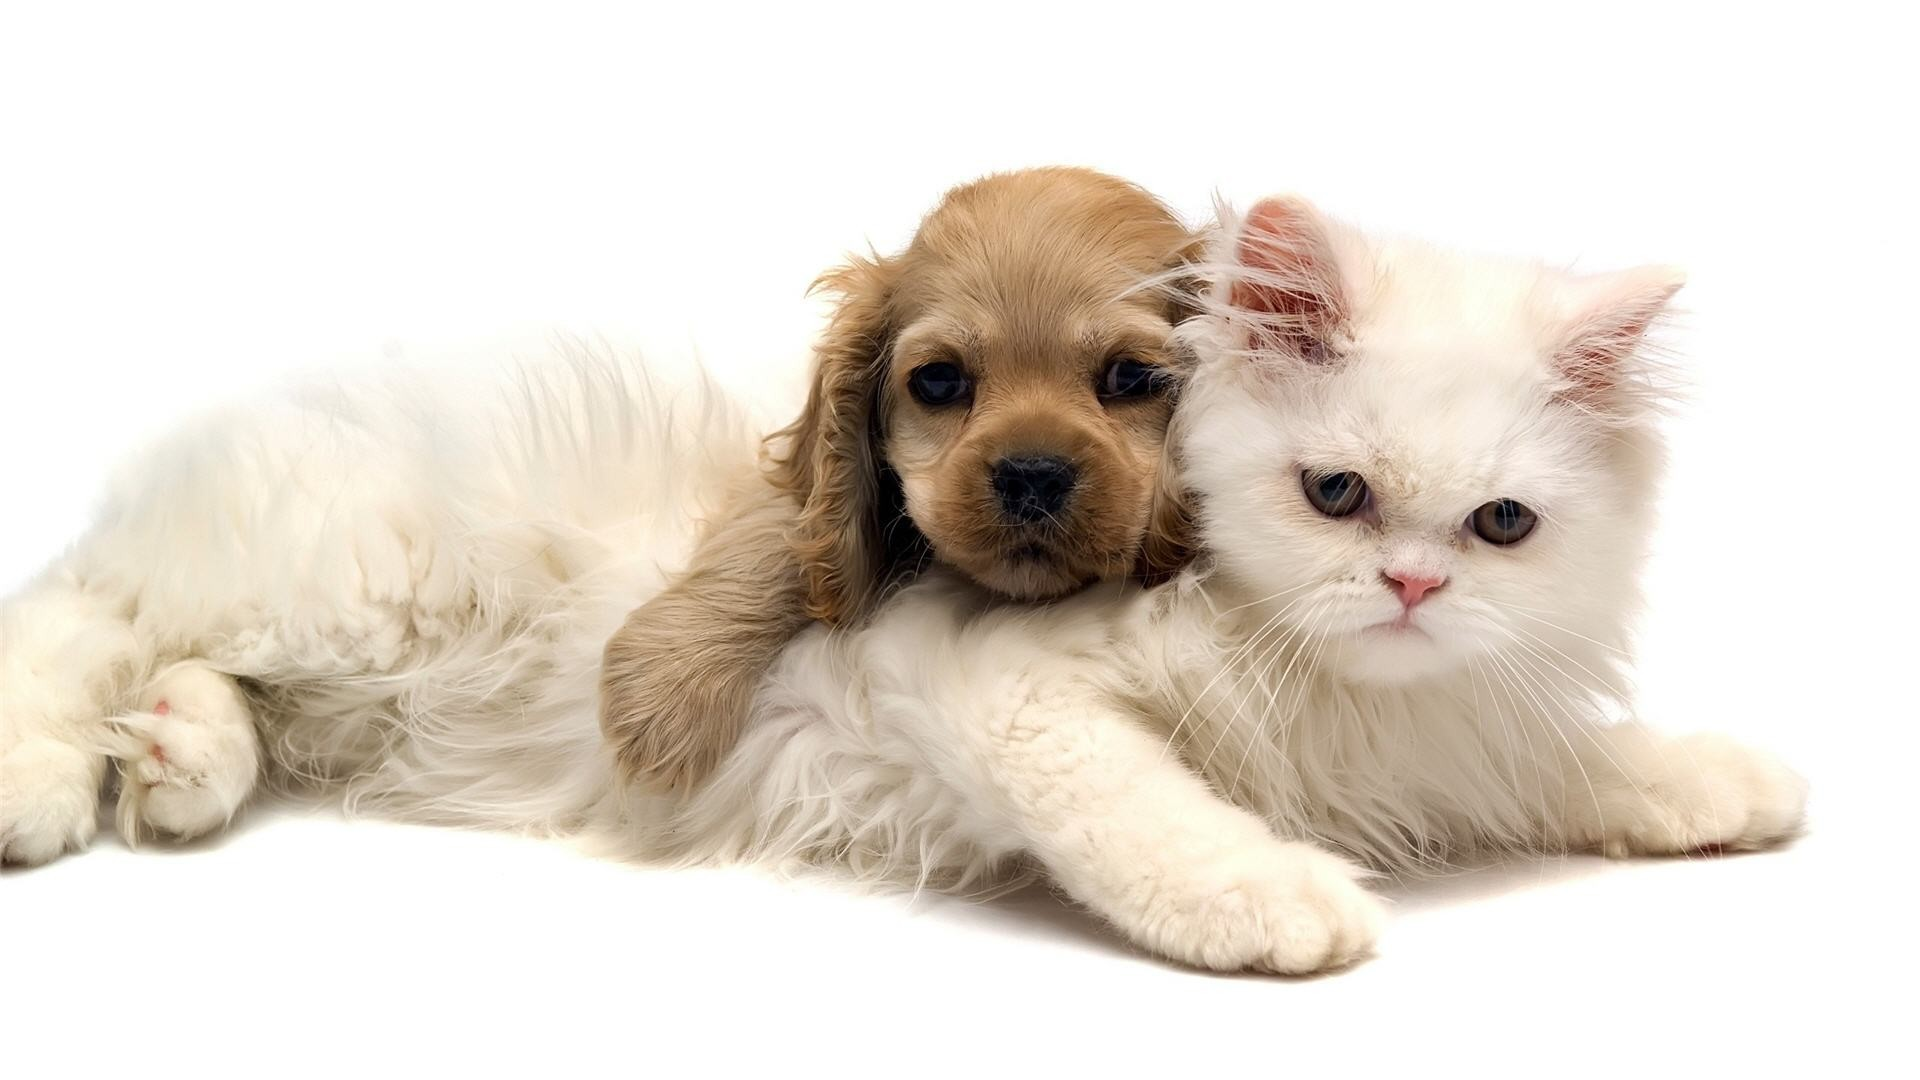 Adorable Cat and Dog Wallpaper | Wallpapers Green Cat Cute And Dog Jpg  | #